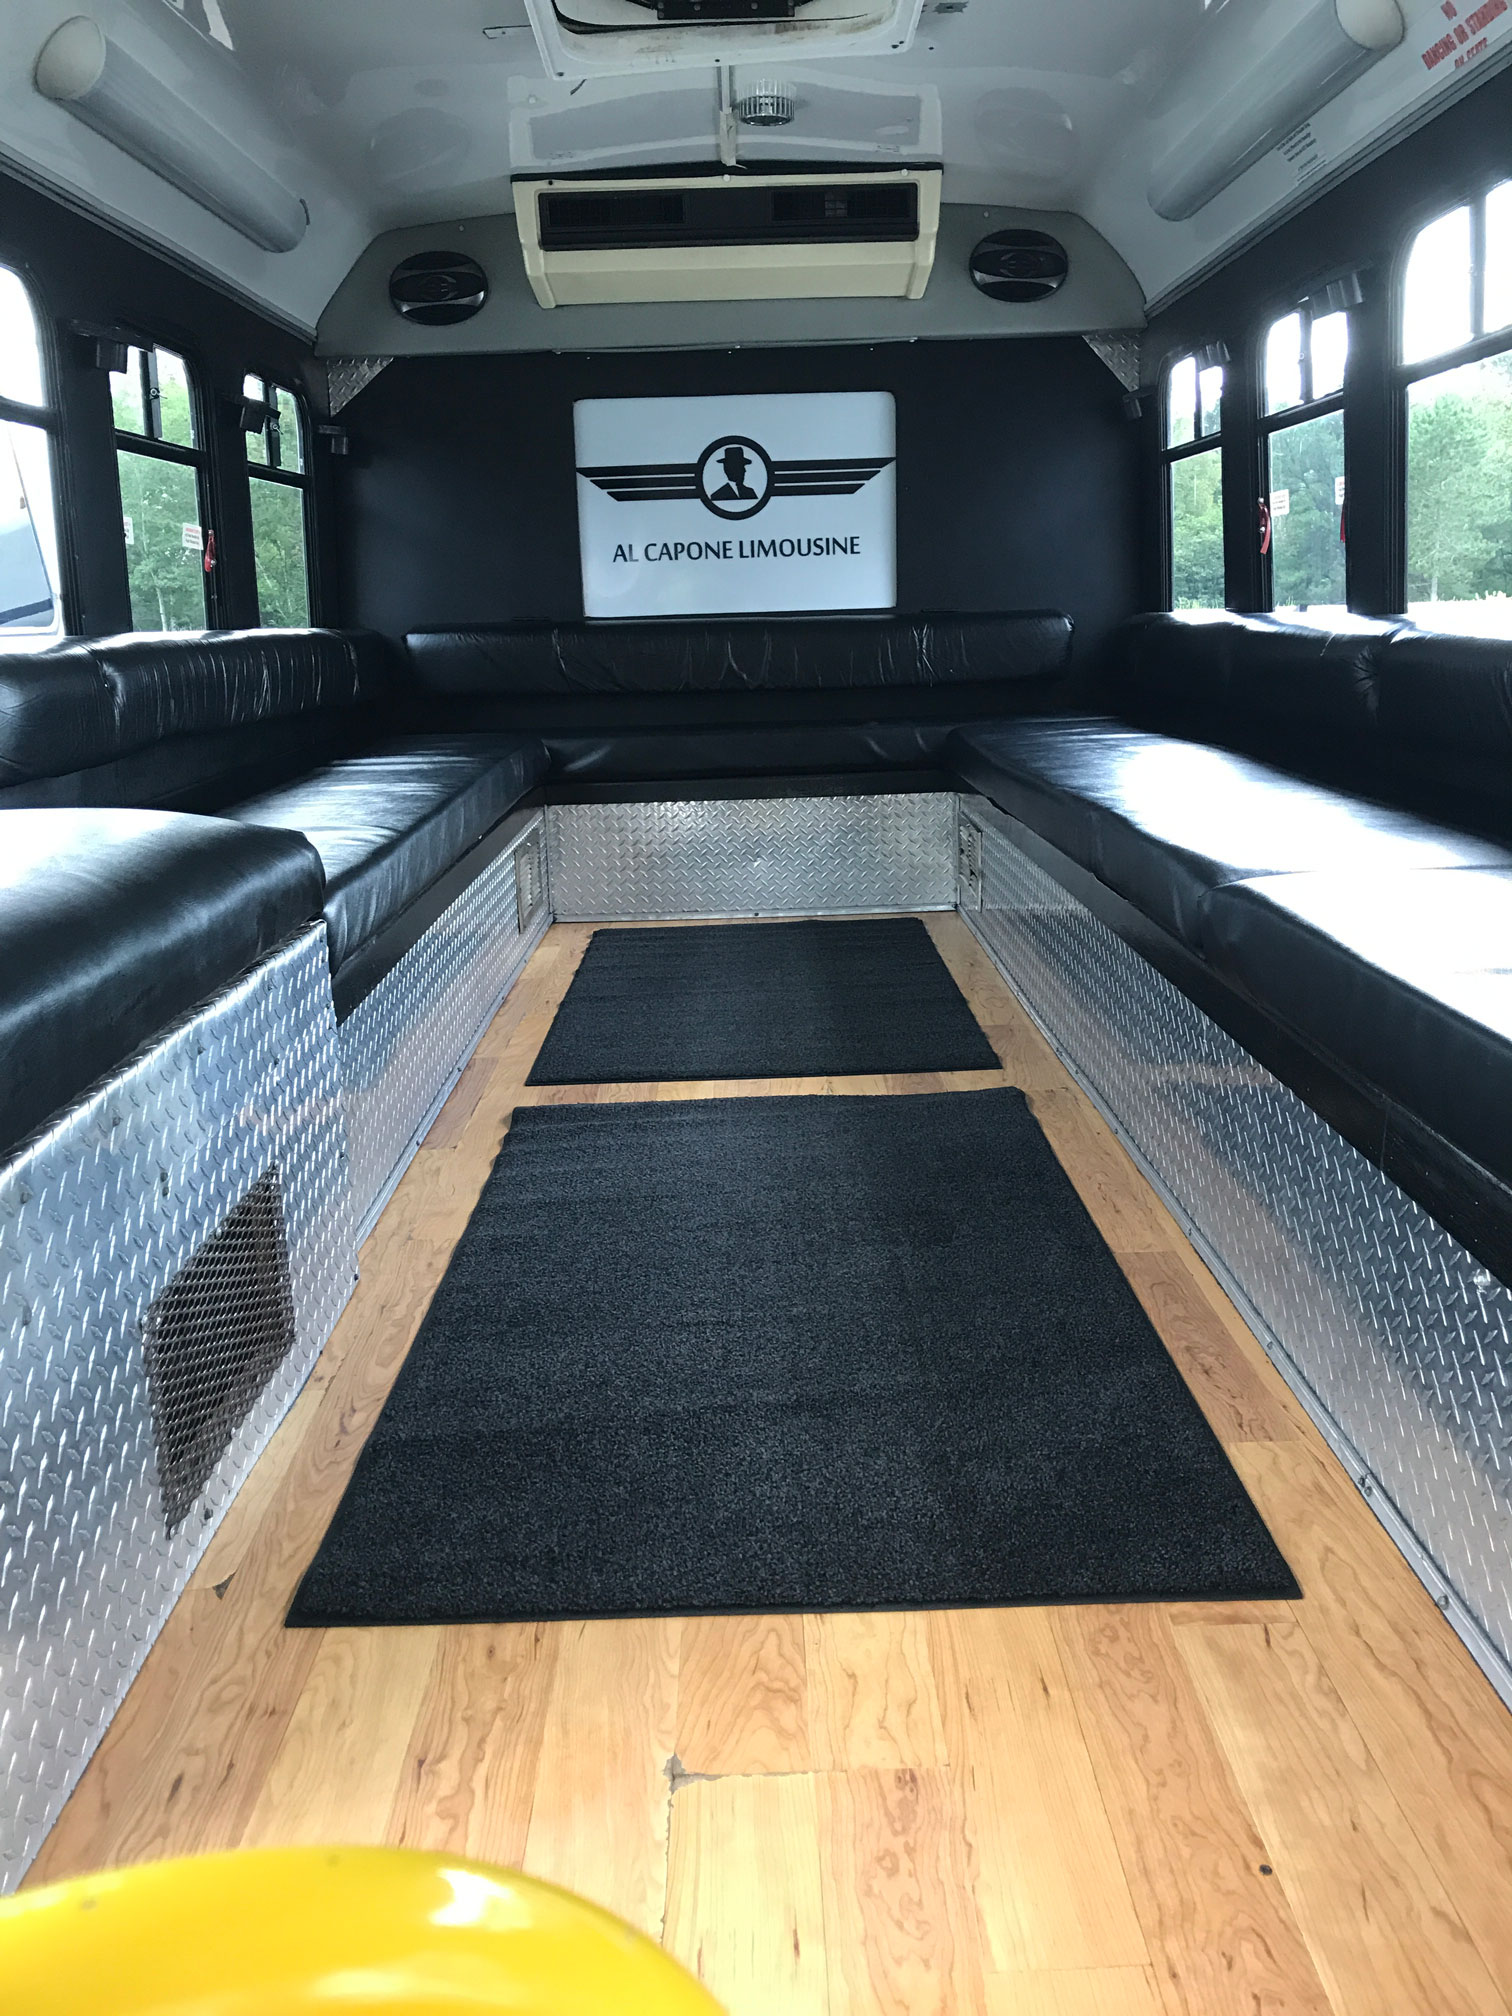 Al Capone Limos Party Bus with wood floors